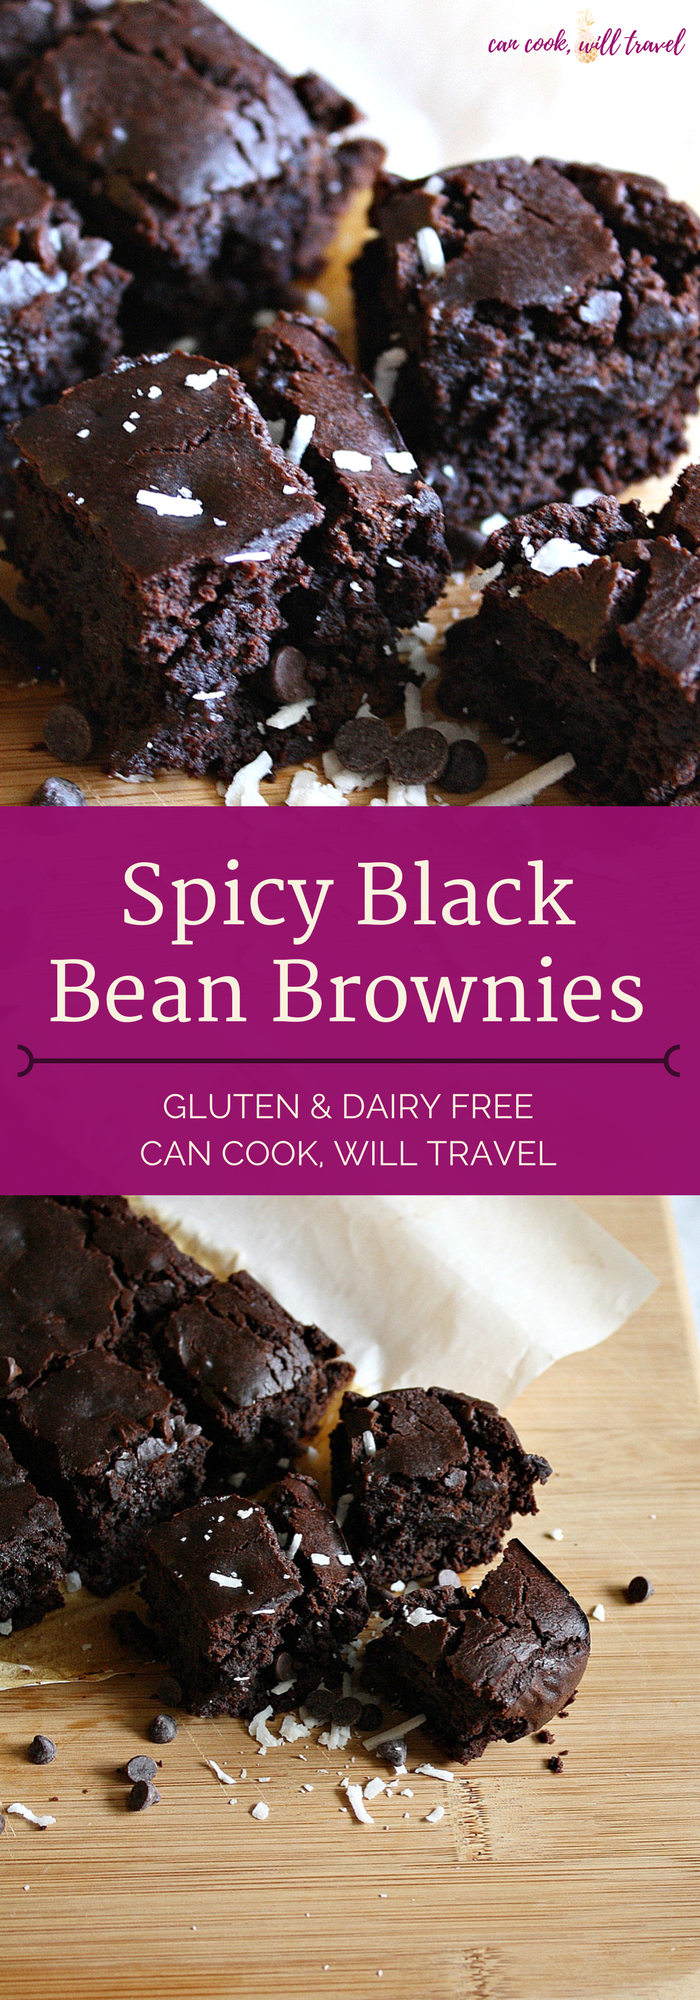 Spicy Black Bean Brownies_Collage1